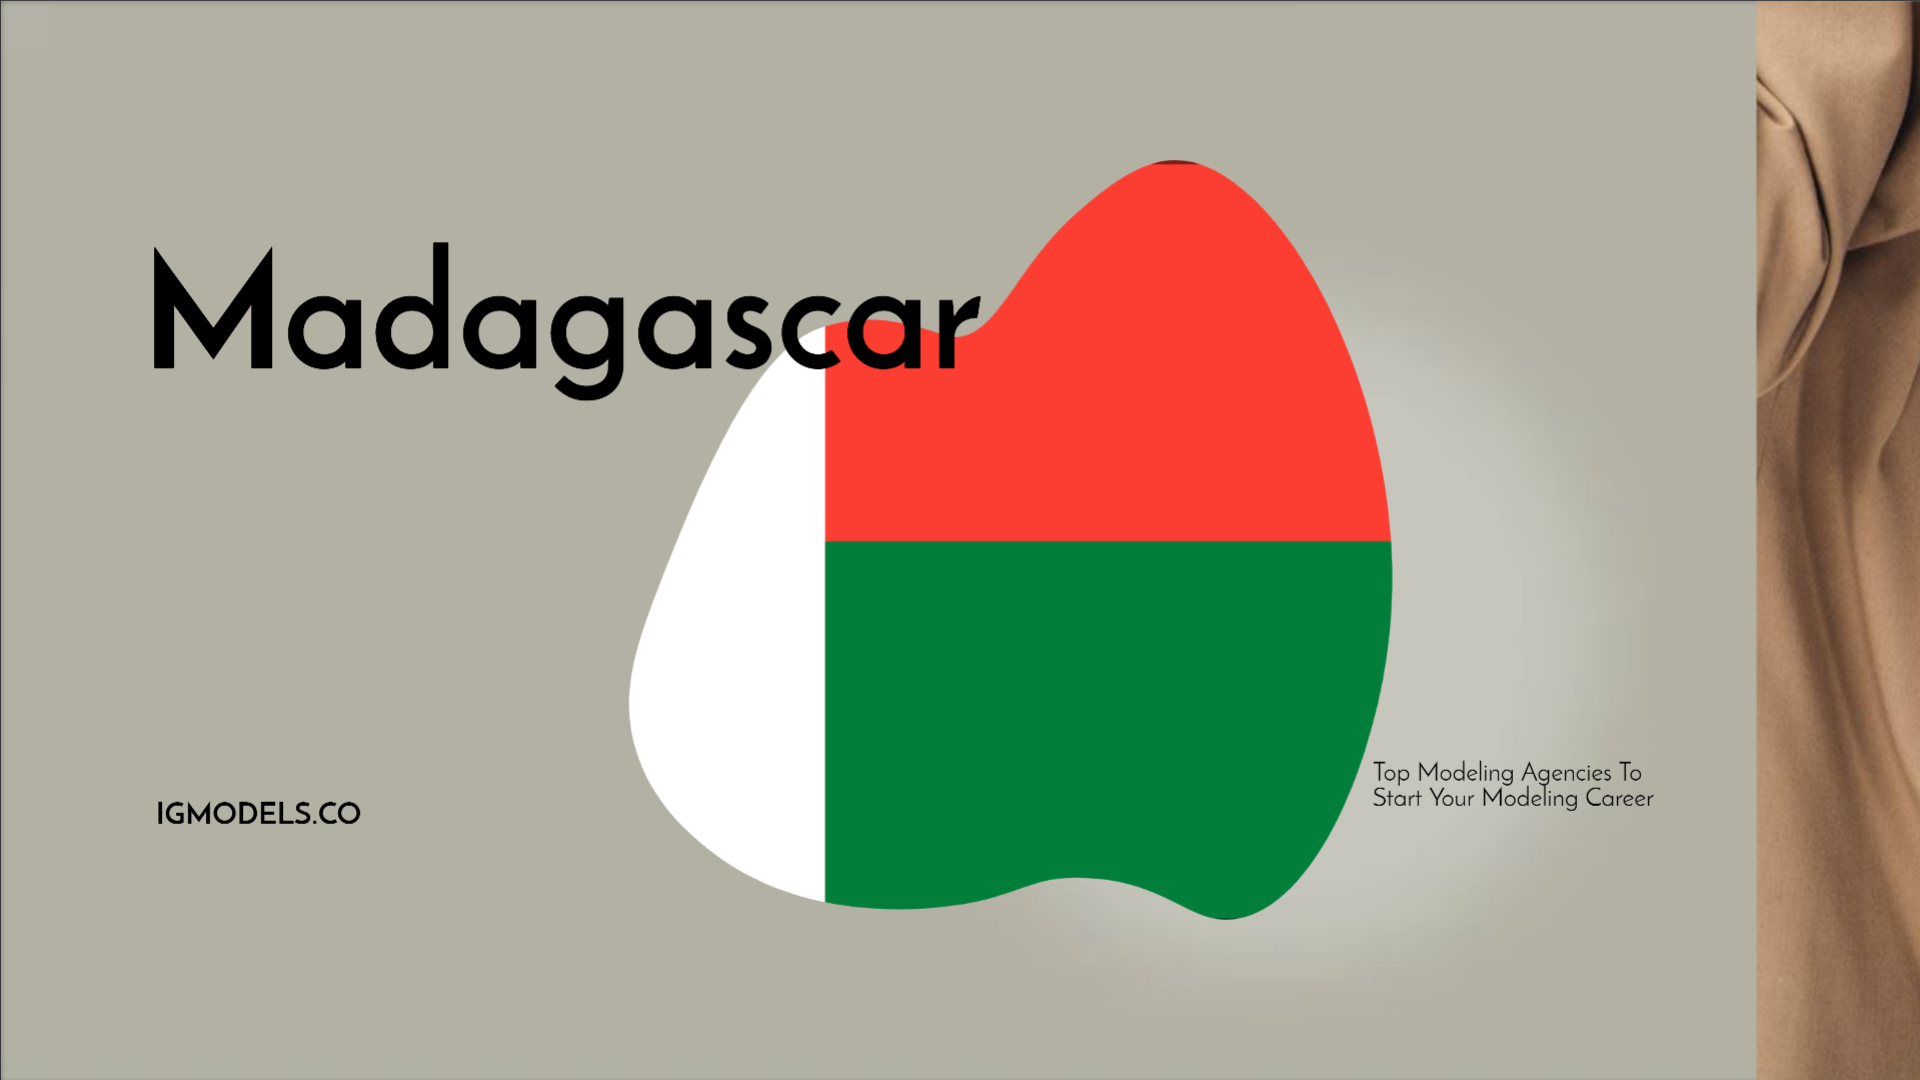 List : Top 35 Modeling Agencies In Madagascar To Start Your Modeling Career In 2021